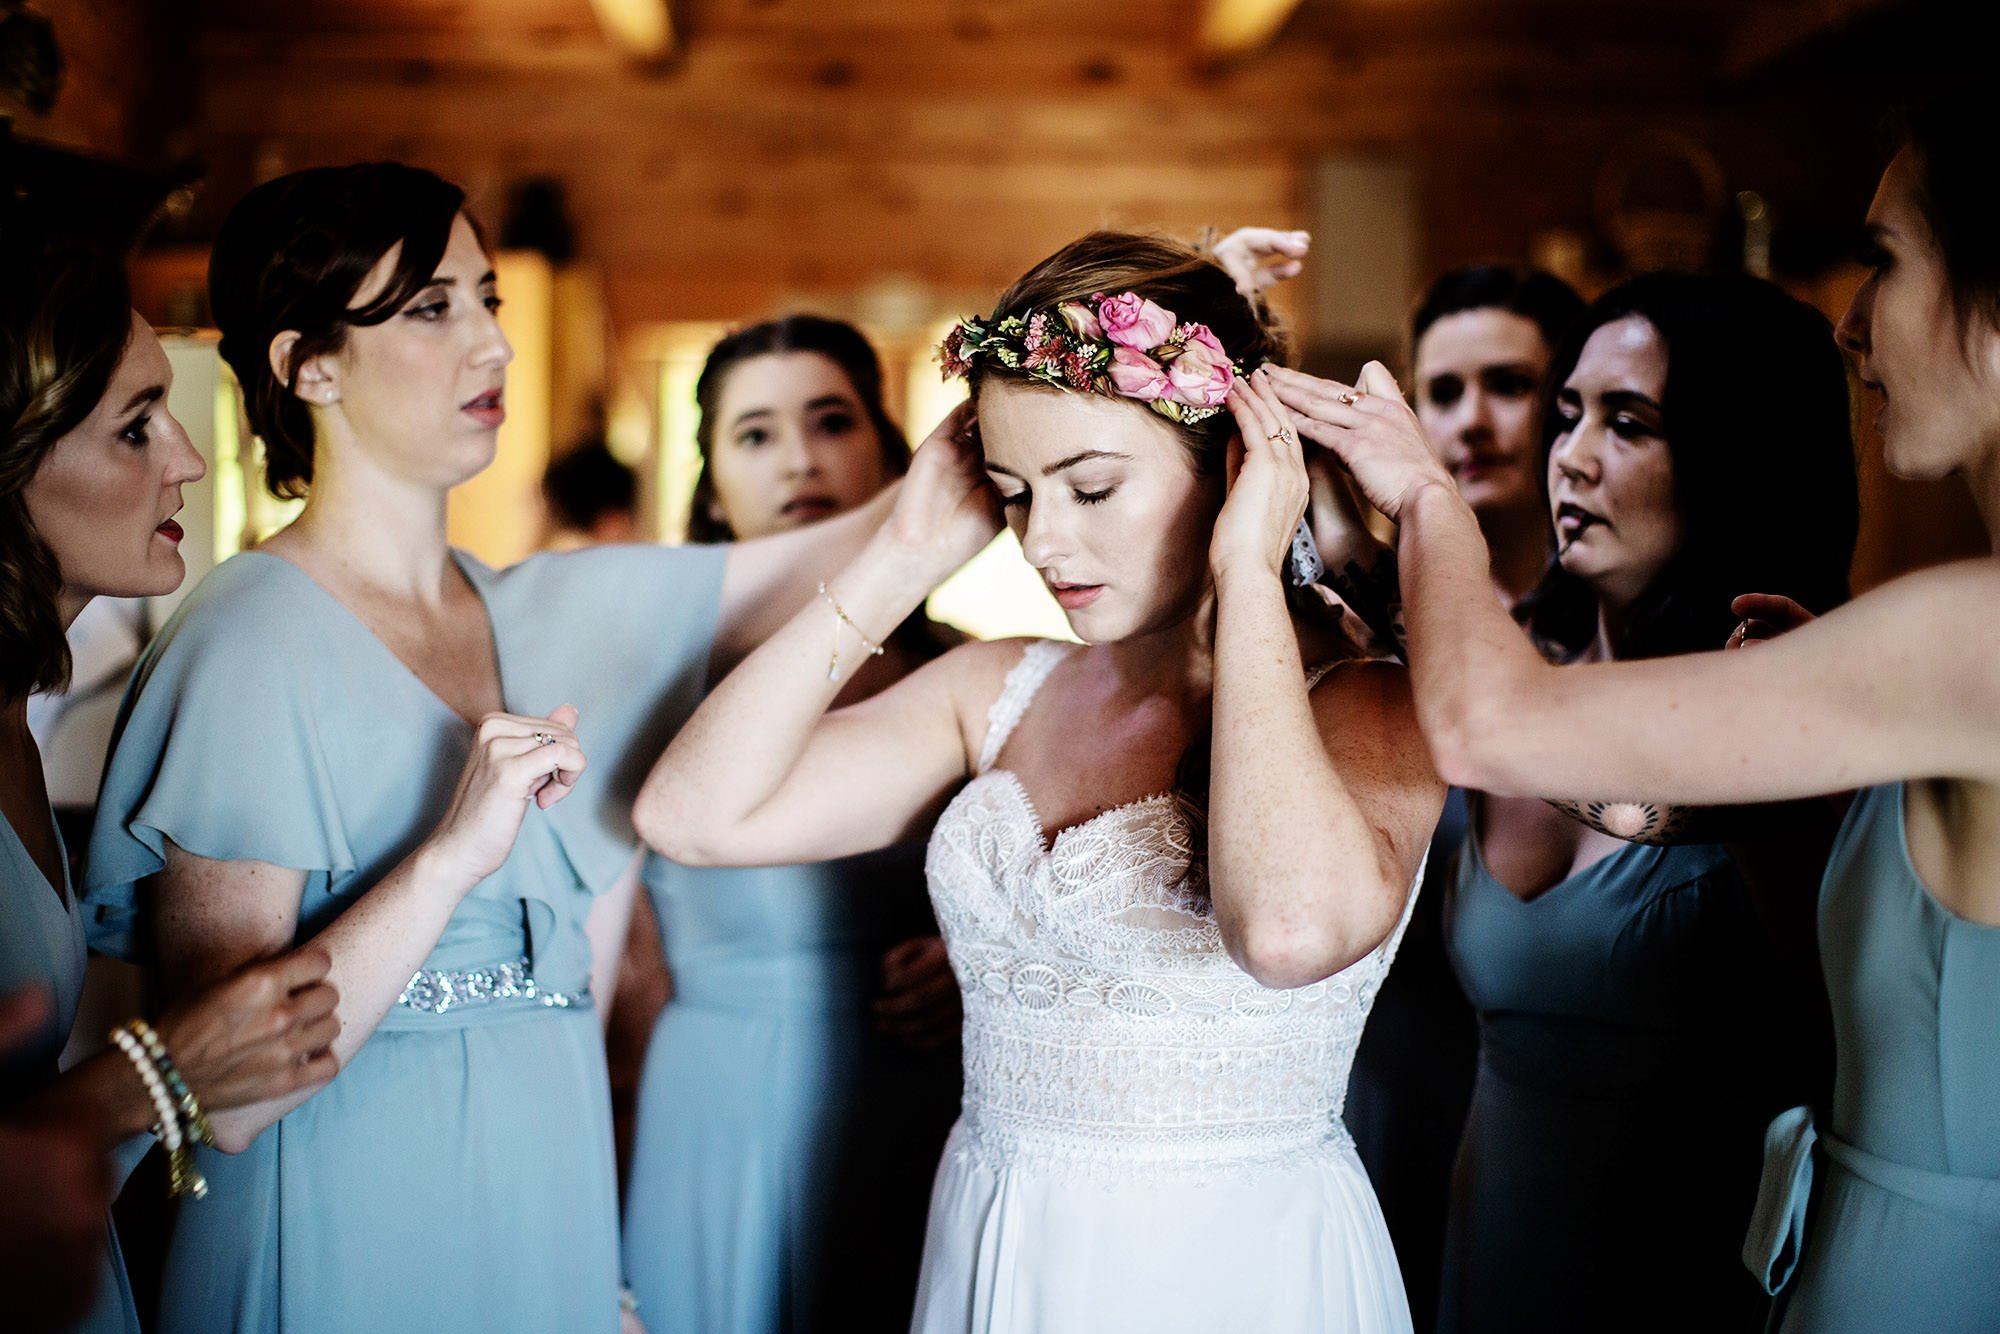 Vermont Family Farm Wedding  I  The bride is helped by her bridesmaids to put flowers in her hair.